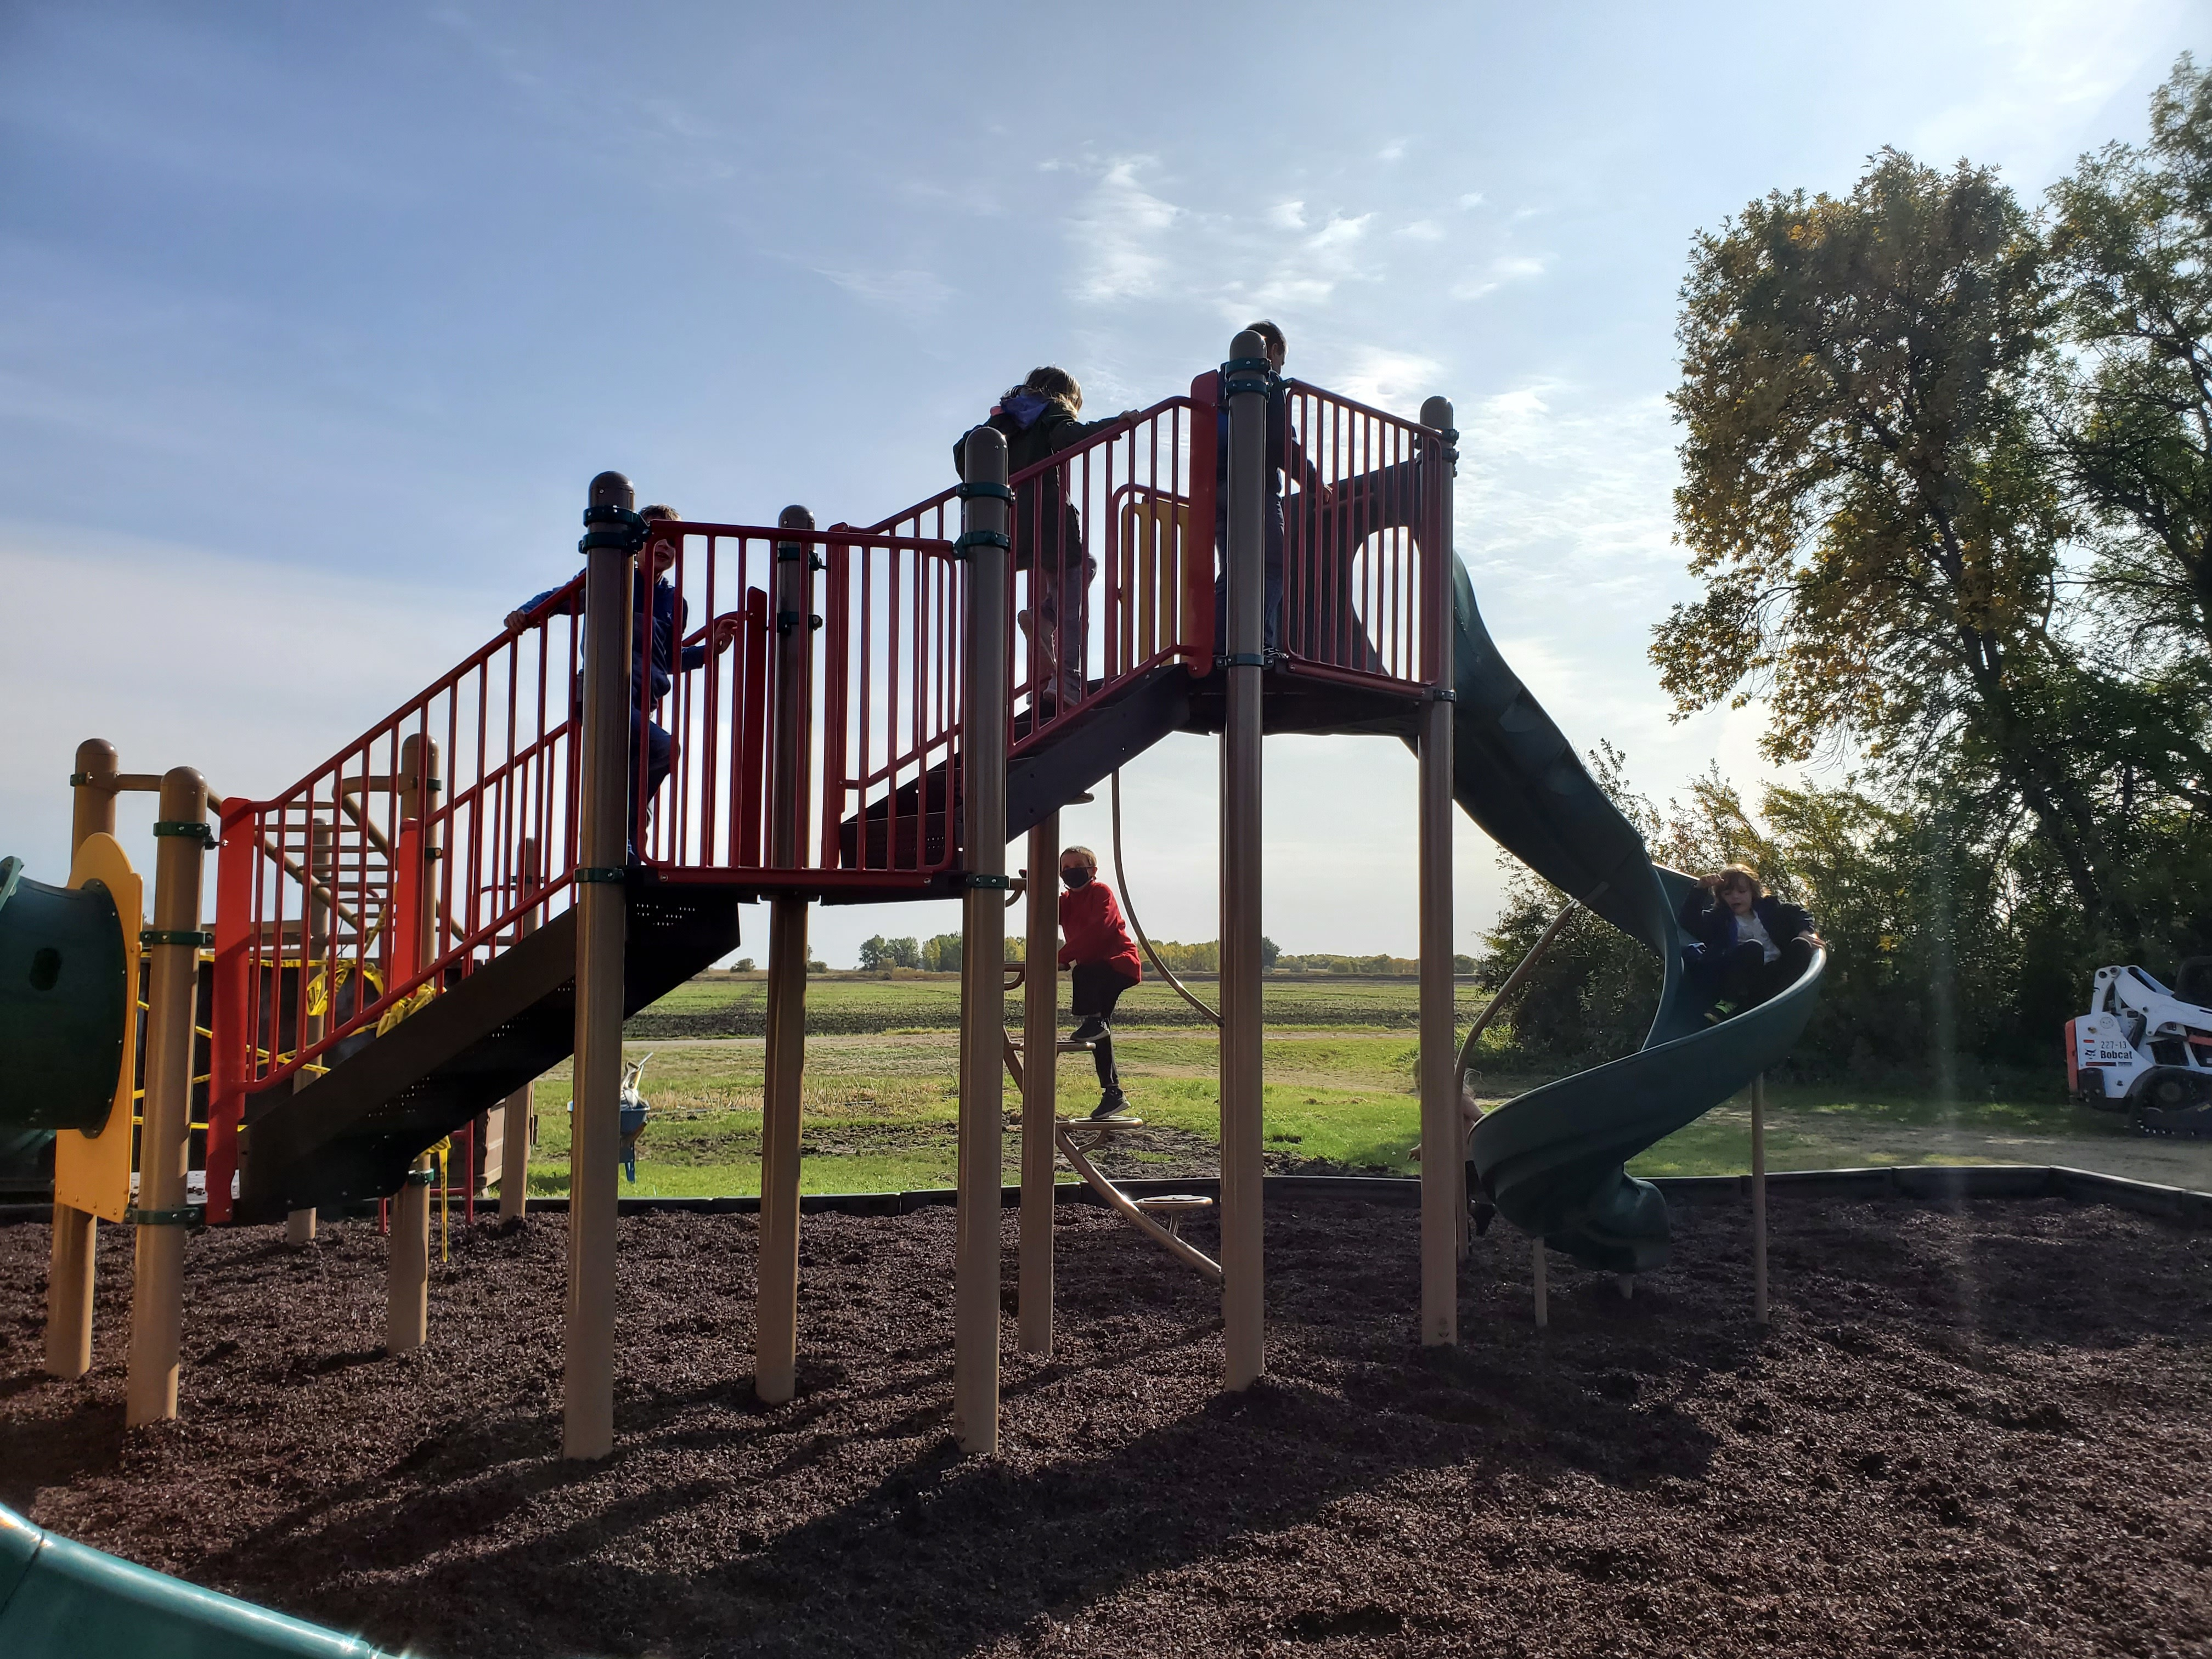 The new walkway and slide on the new playground